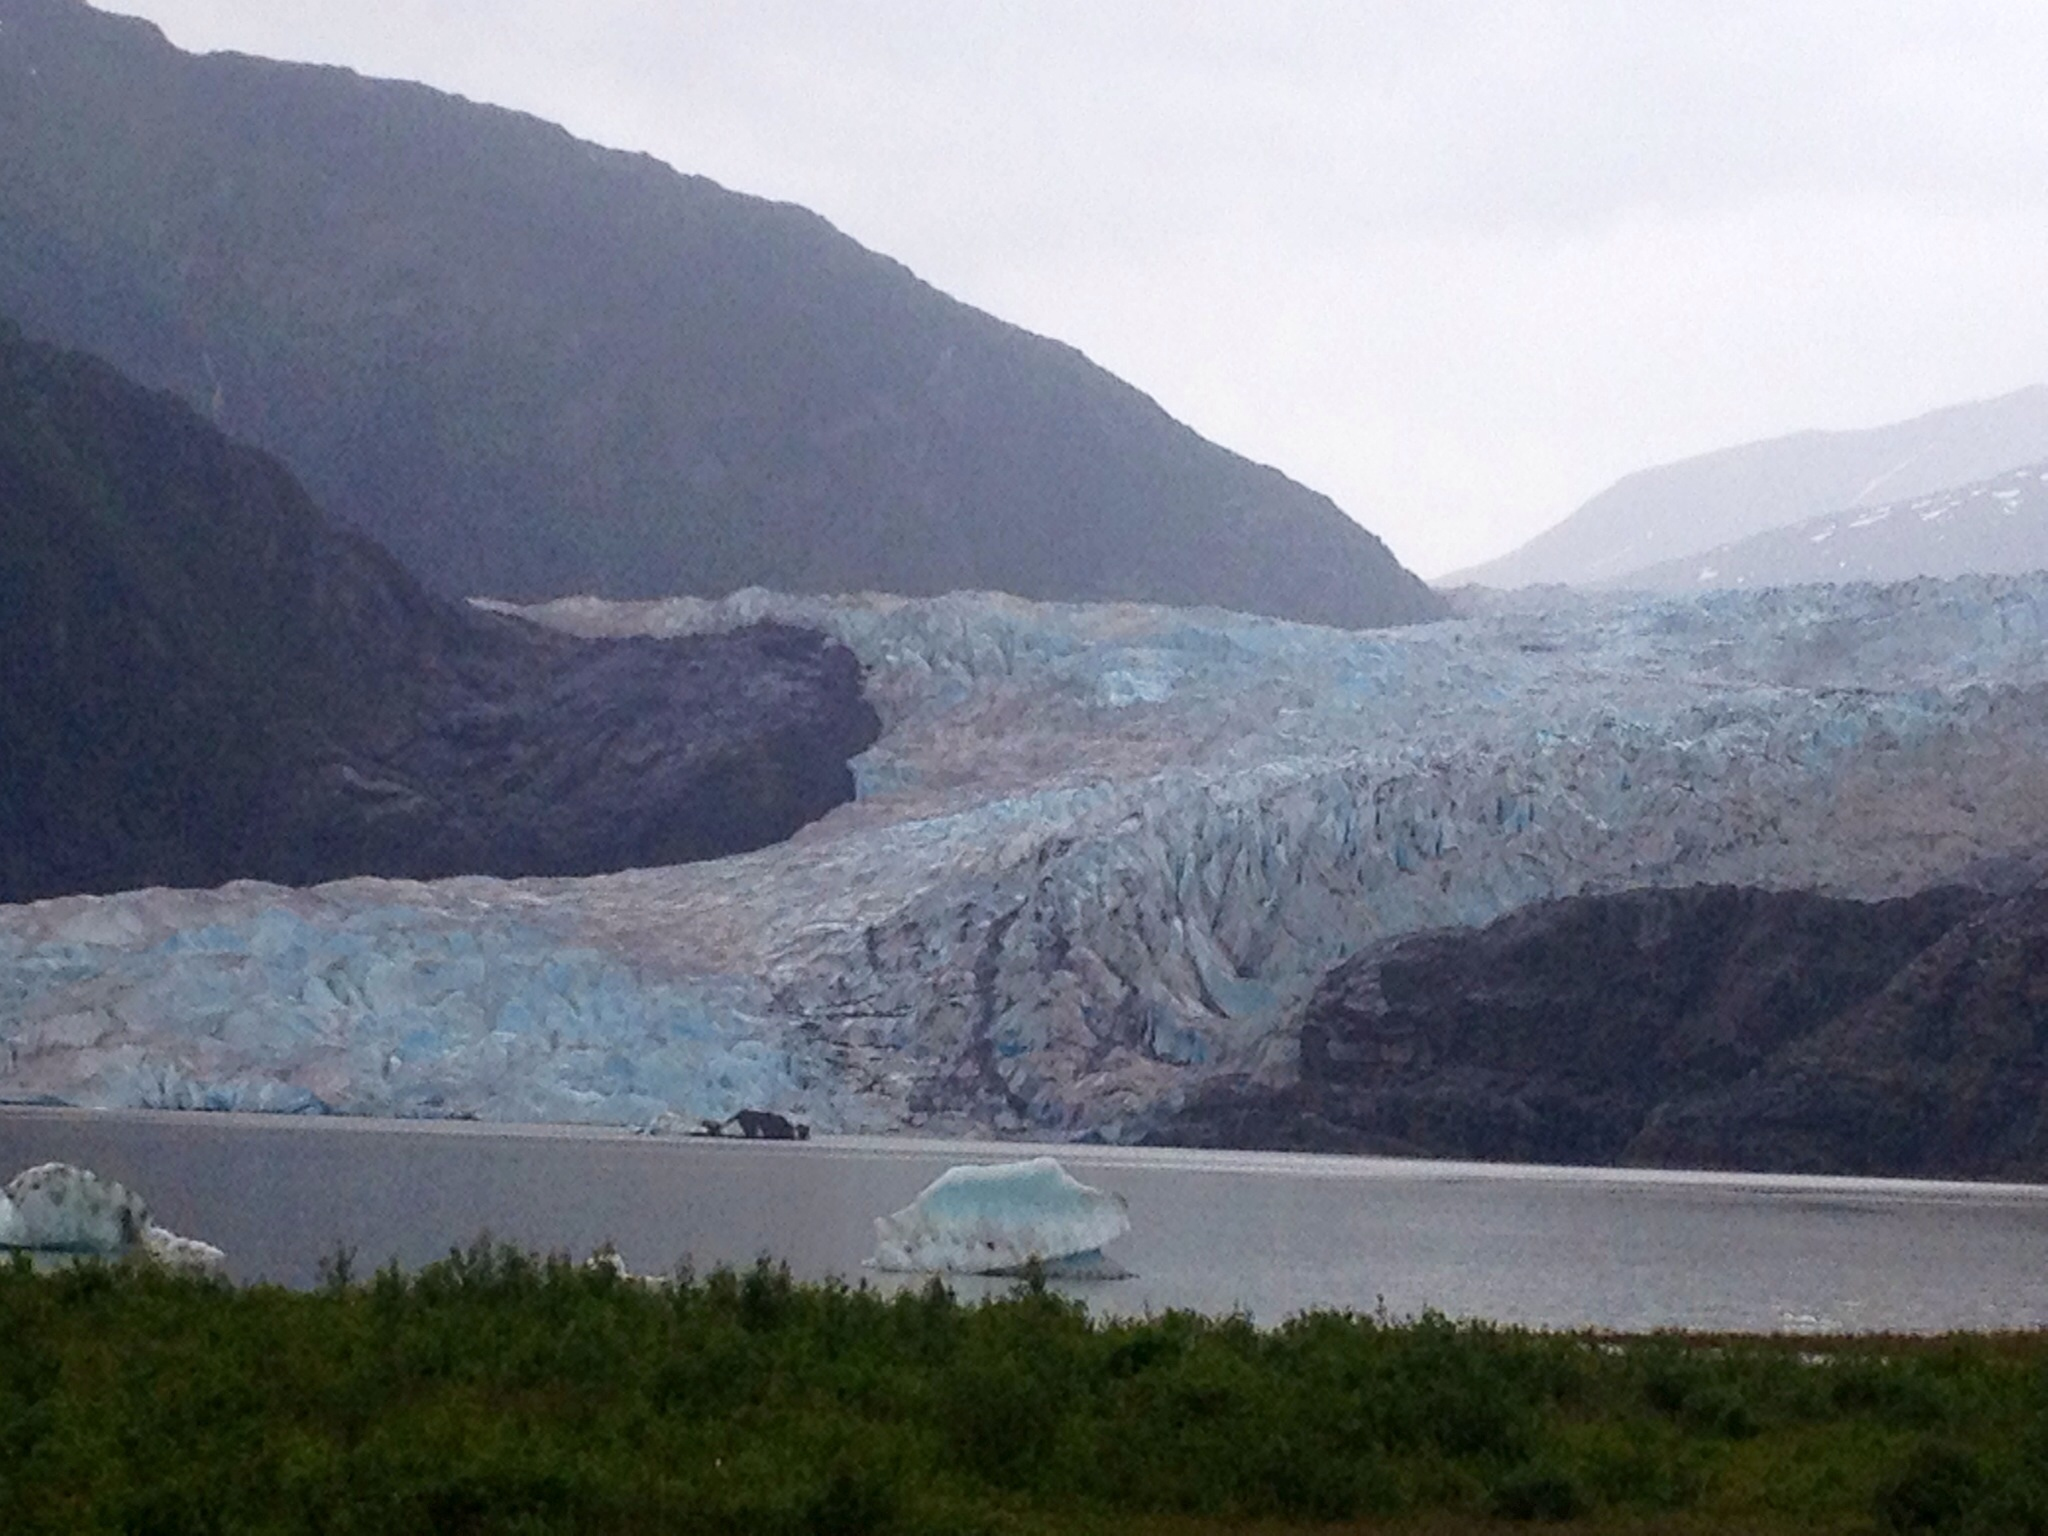 The view of the Mendenhall Glacier from park's viewing area.